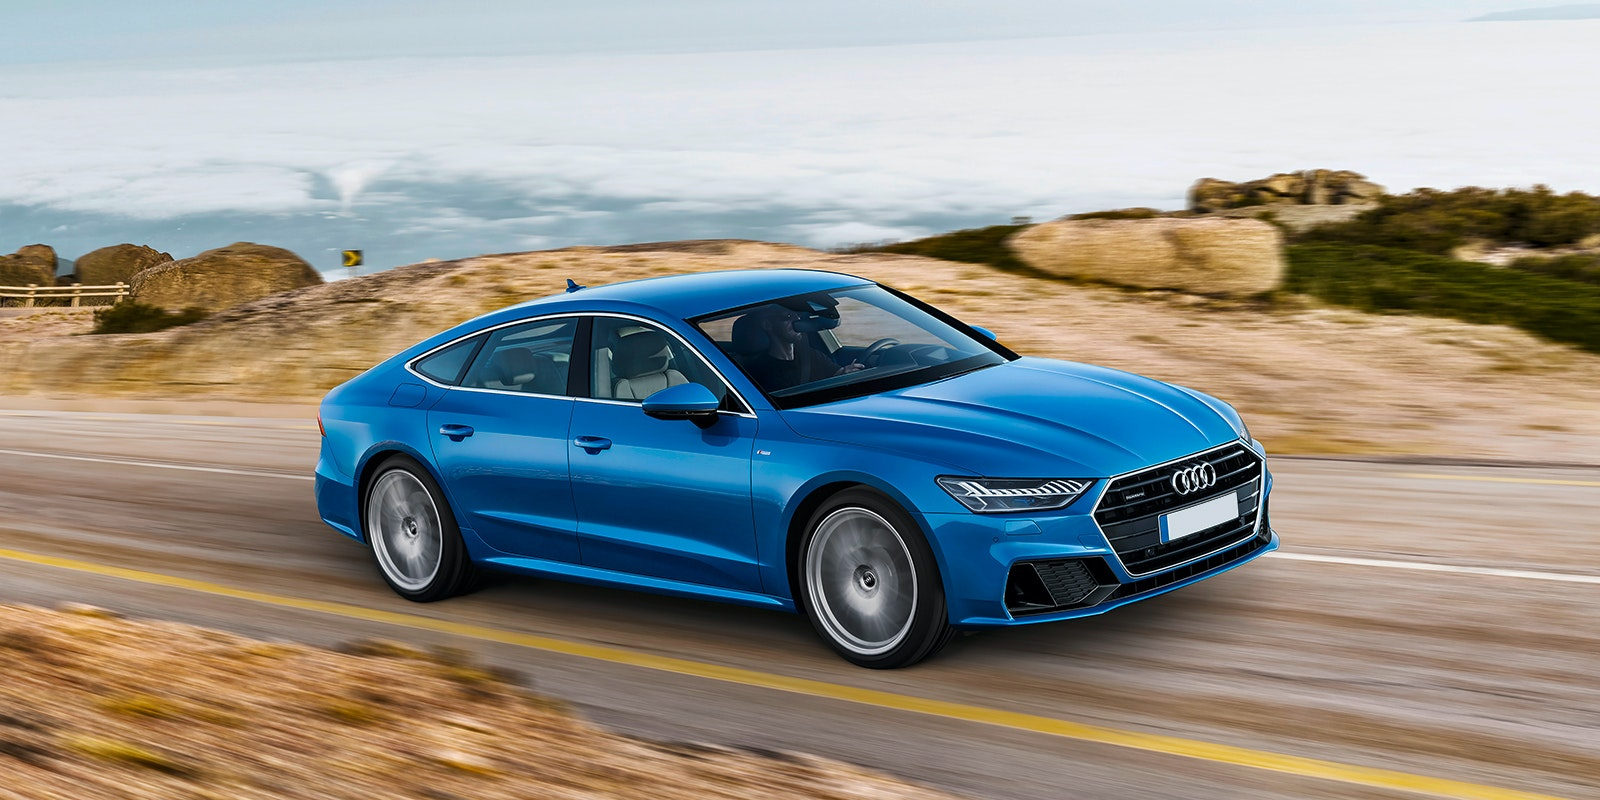 Audi Rs7 Release Date >> 2018 Audi A7 S7 And Rs7 Price Specs And Release Date Carwow